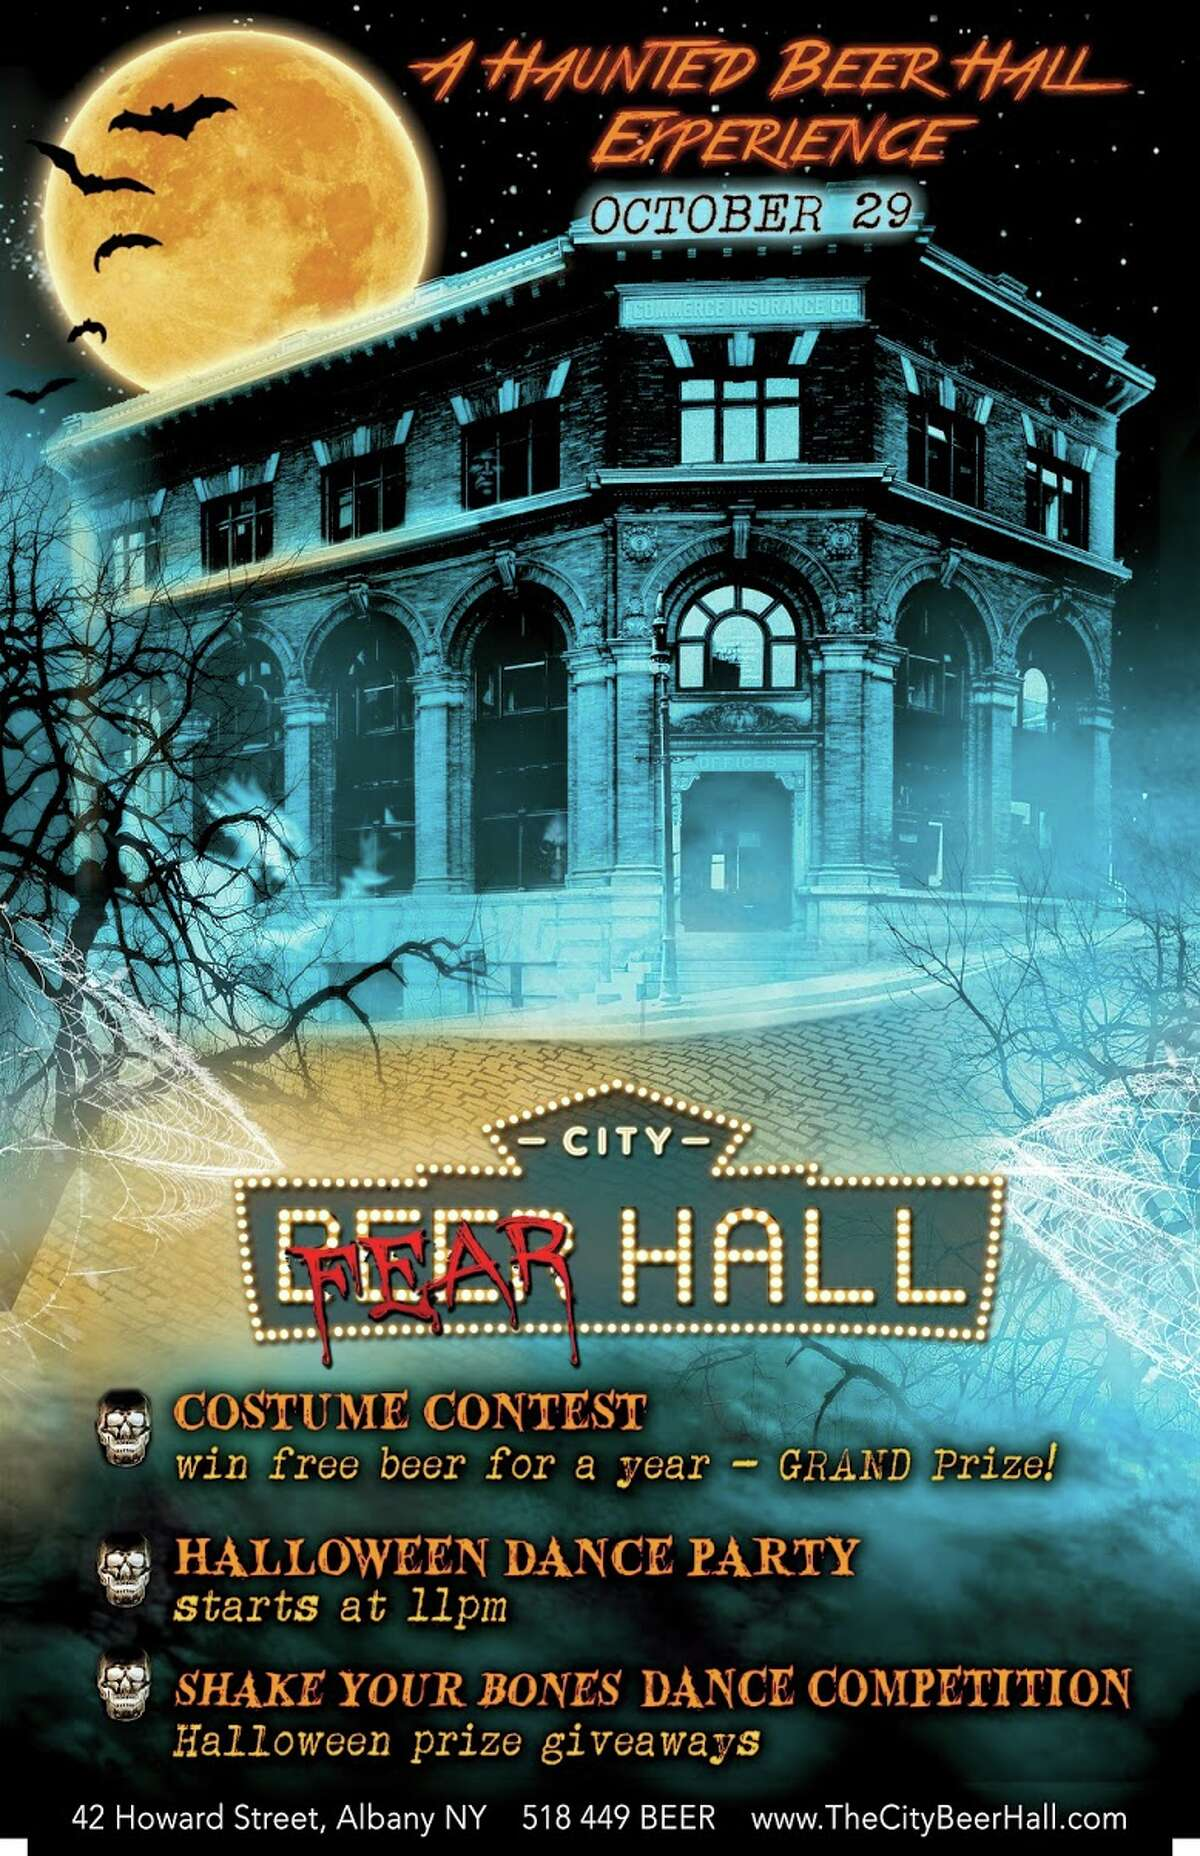 City Fear Hall - The Haunted Beer Hall Experience. When: Saturday, Oct 29, 10 PM. What: Winner of the one-of-a-kind costume contest wins FREE BEER FOR A YEAR. DJs, dancing, tricks, treats and more. Party starts at 10 PM and is 100% free admission. Where: 42 Howard St., Albany. Click here for more info.